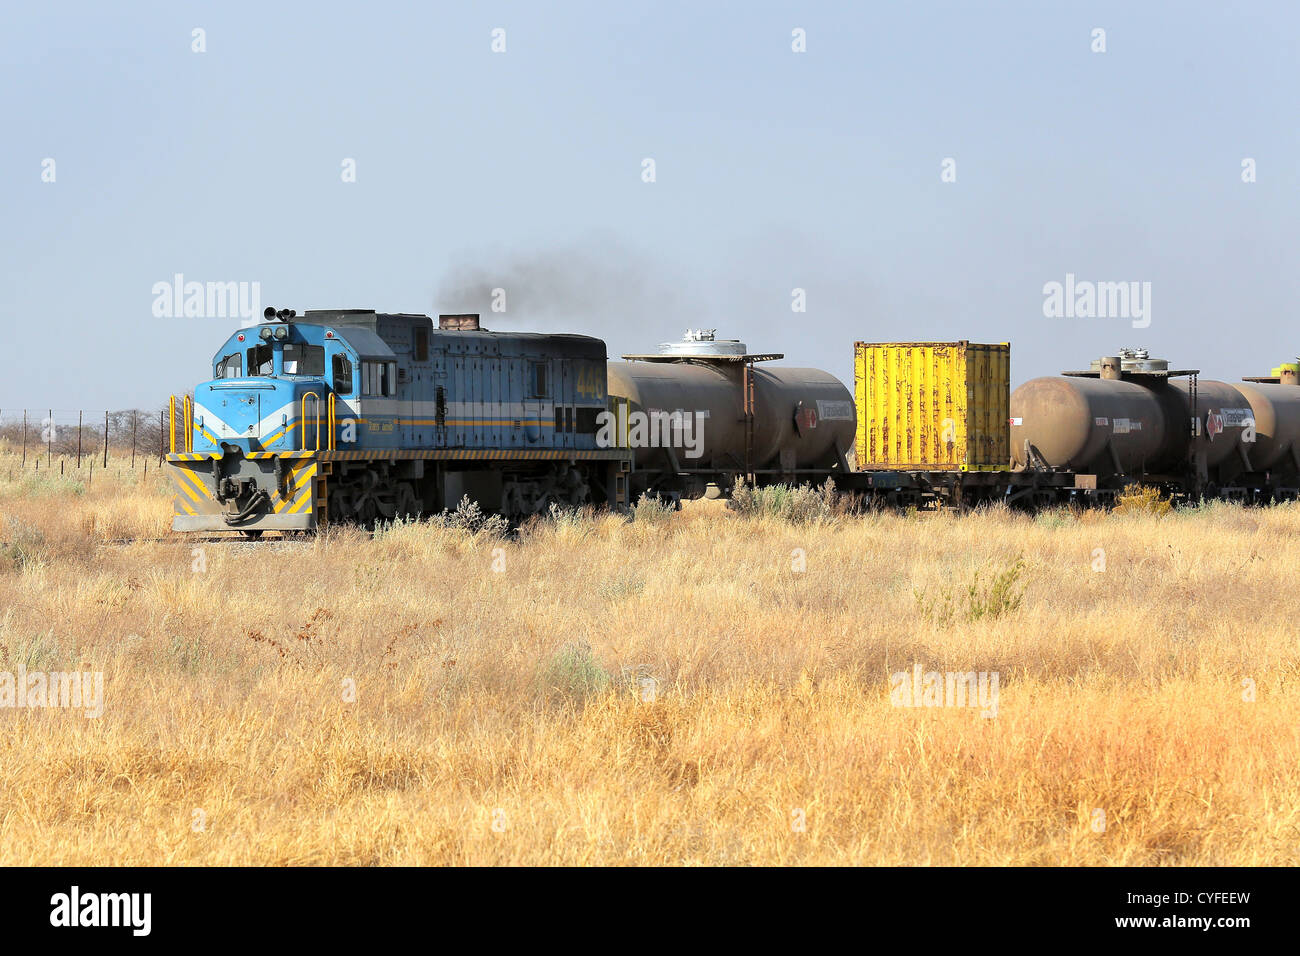 Diesel locomotive, freight train in Namibia - Stock Image